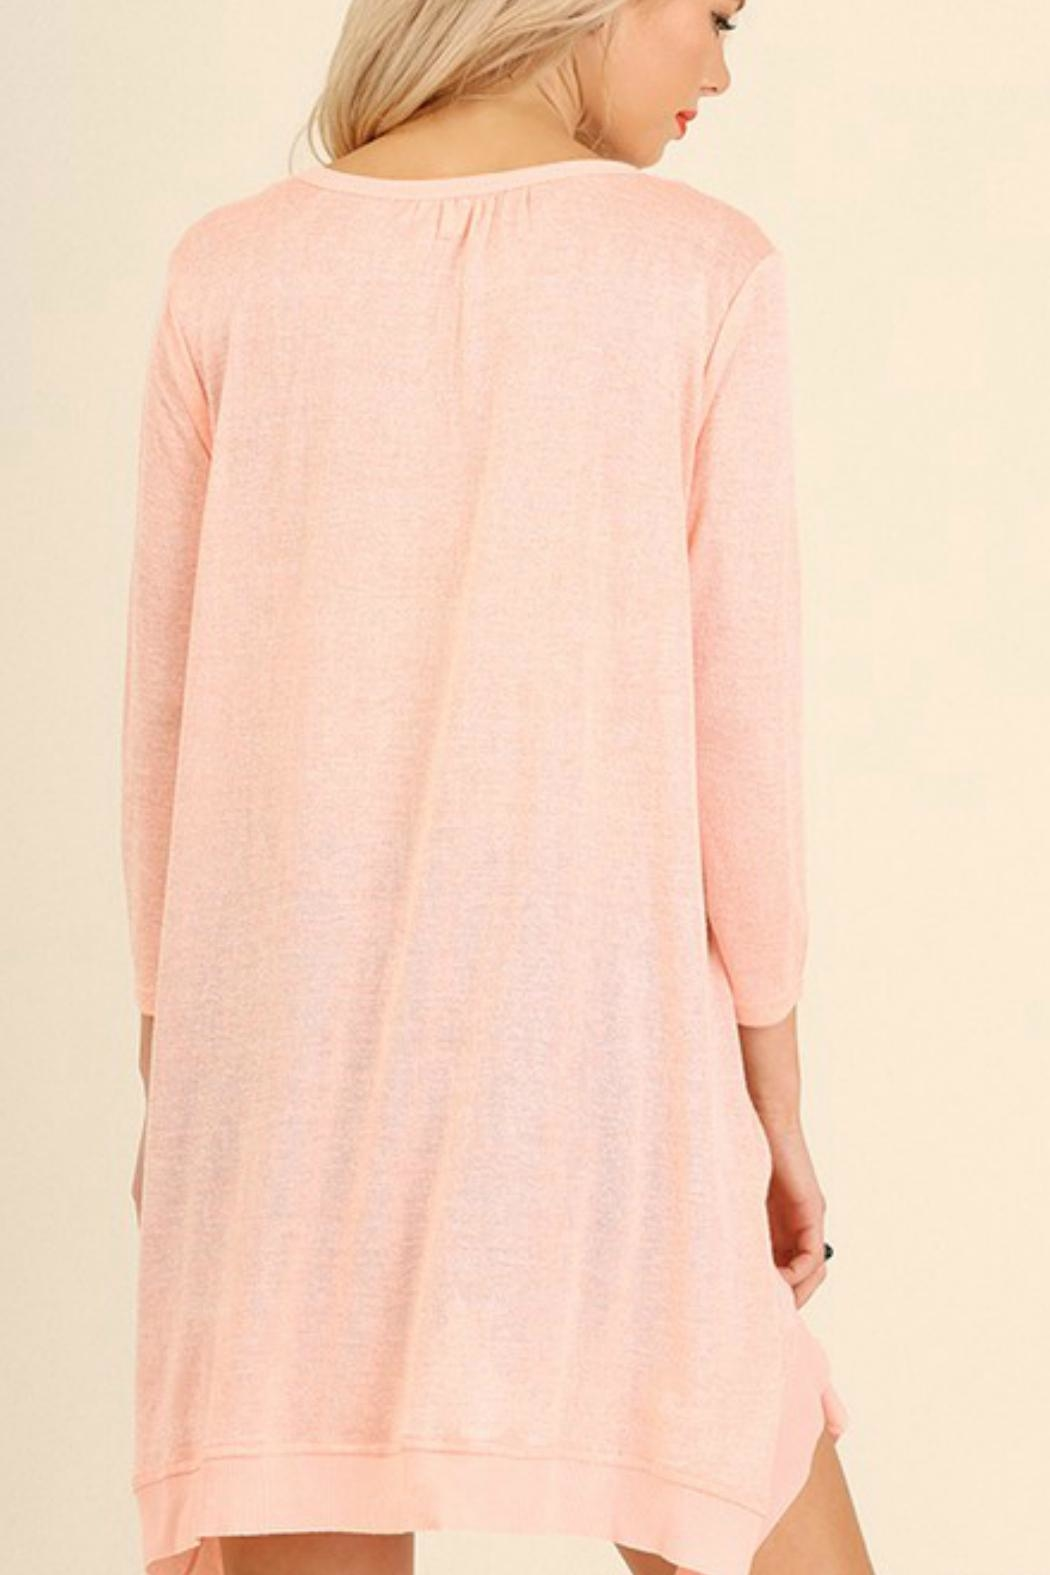 Umgee USA Cross Neckline Top - Front Full Image